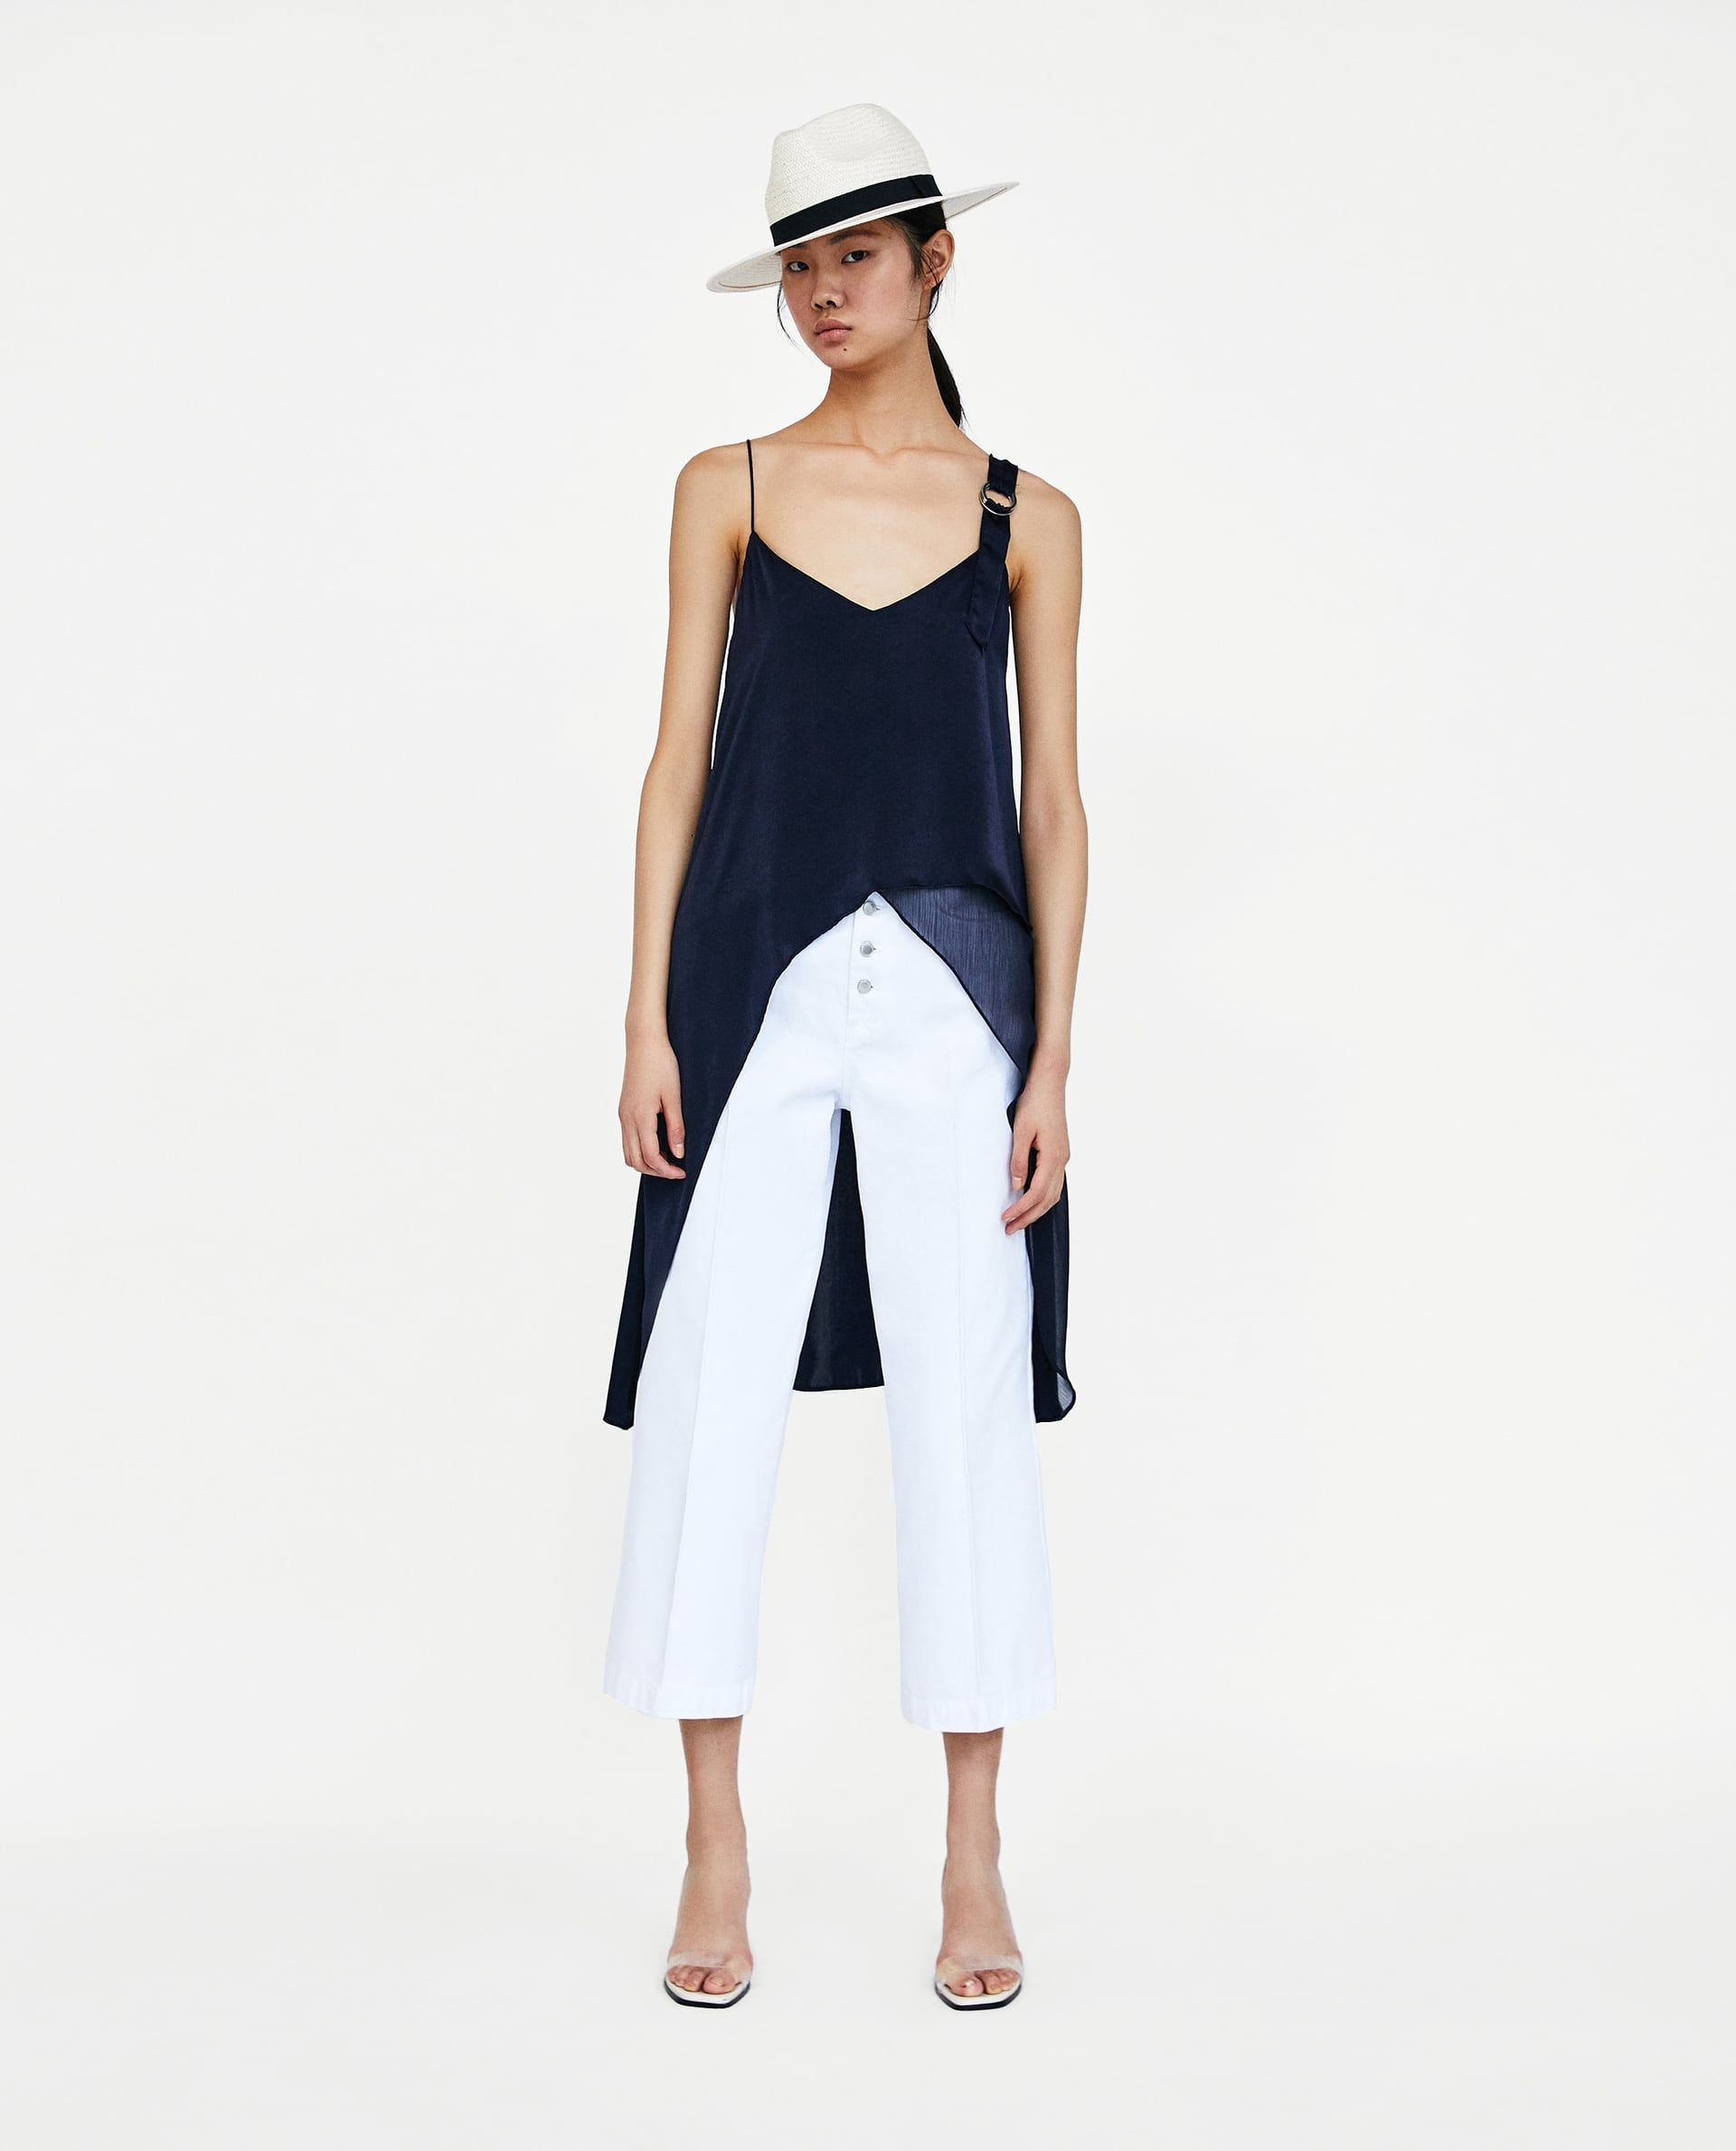 ZARA - WOMAN - COMBINED ASYMMETRIC TOP d014a9e1e